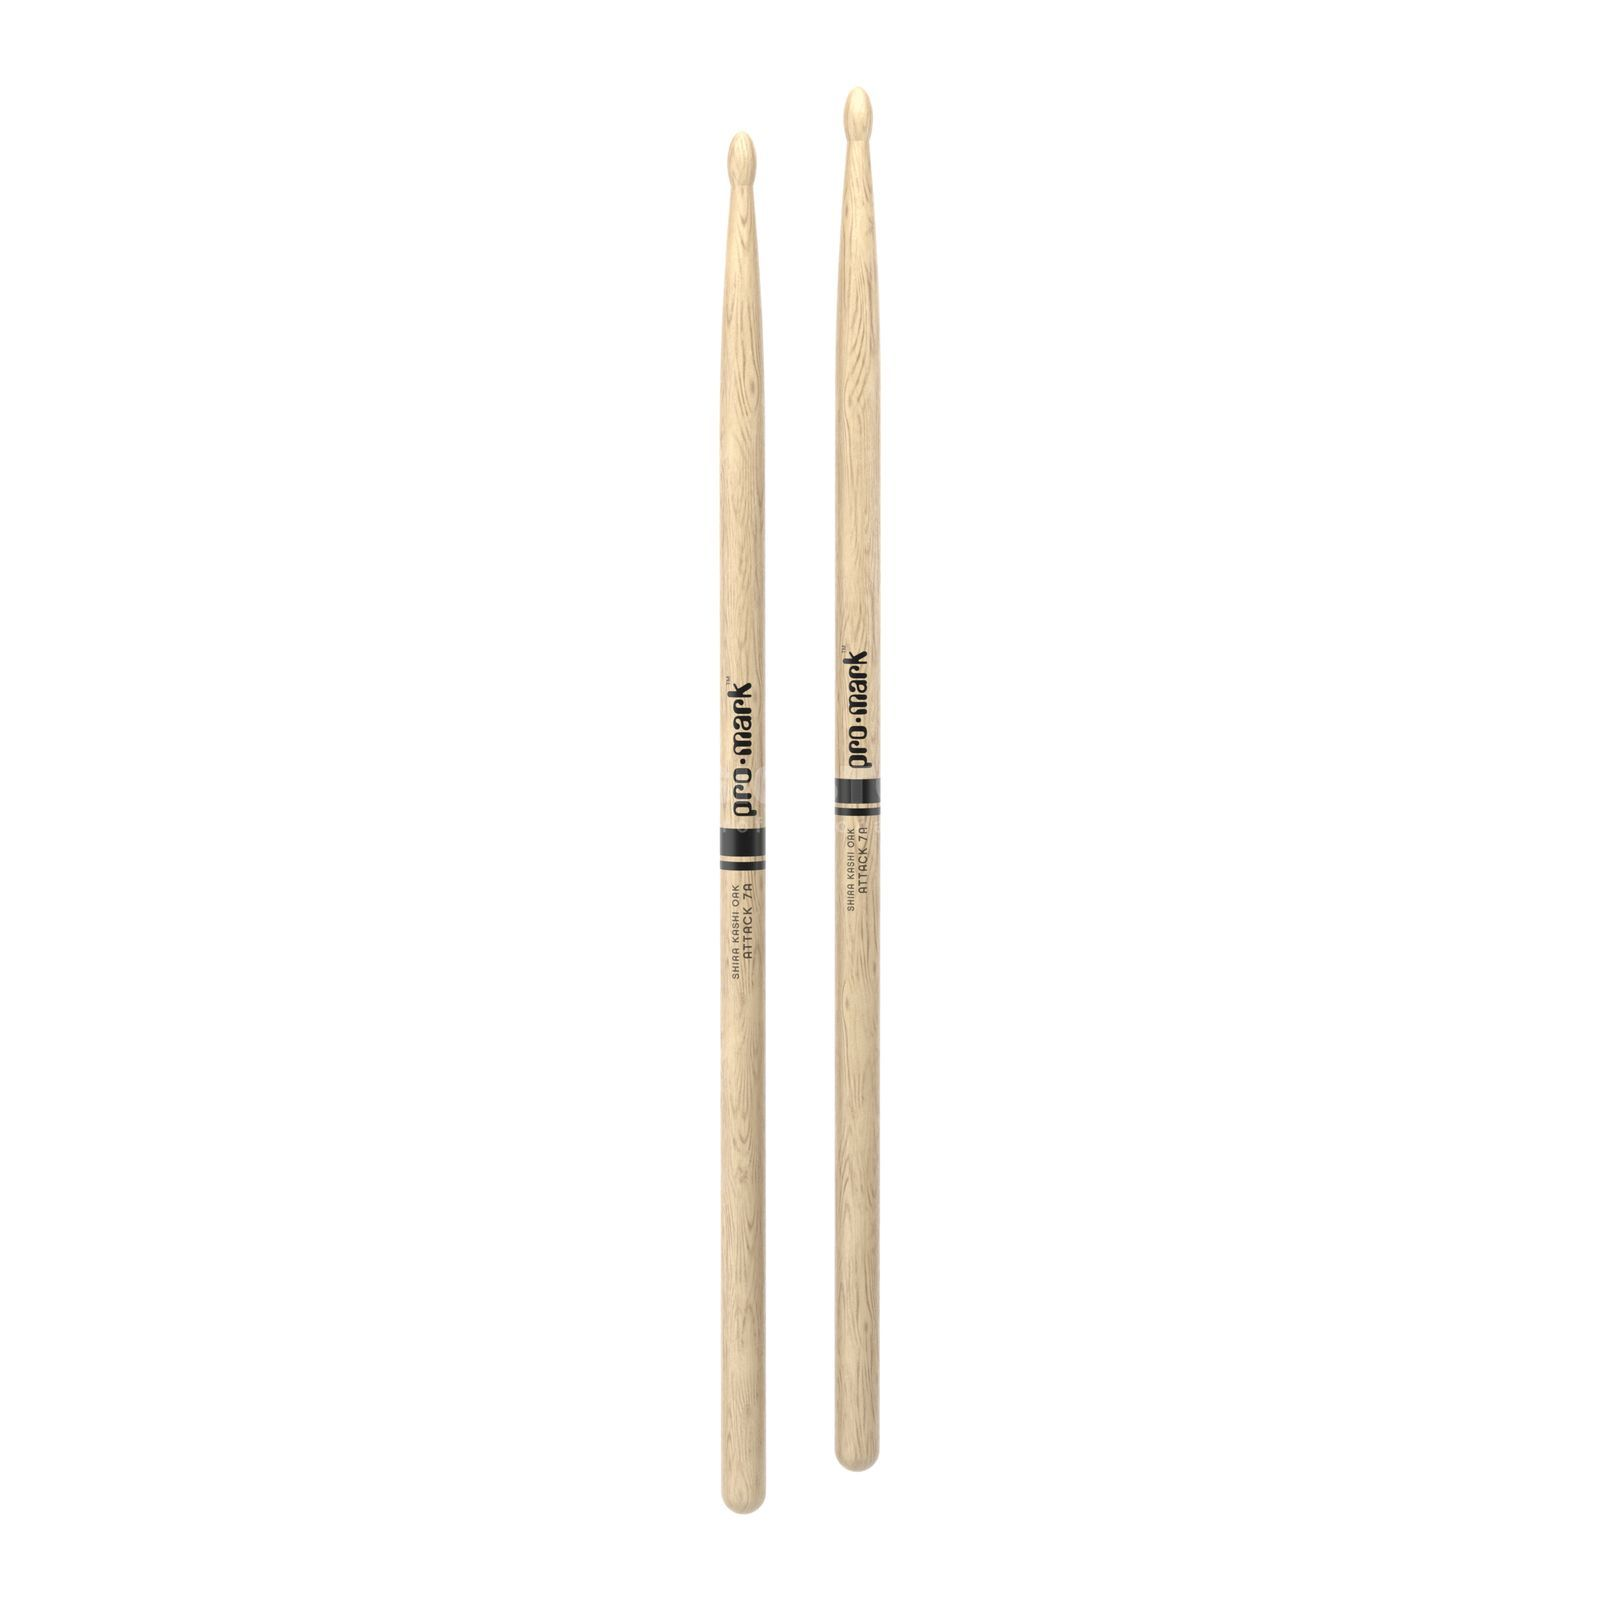 PRO-MARK PW7AW Sticks, Japanese Oak Zdjęcie produktu